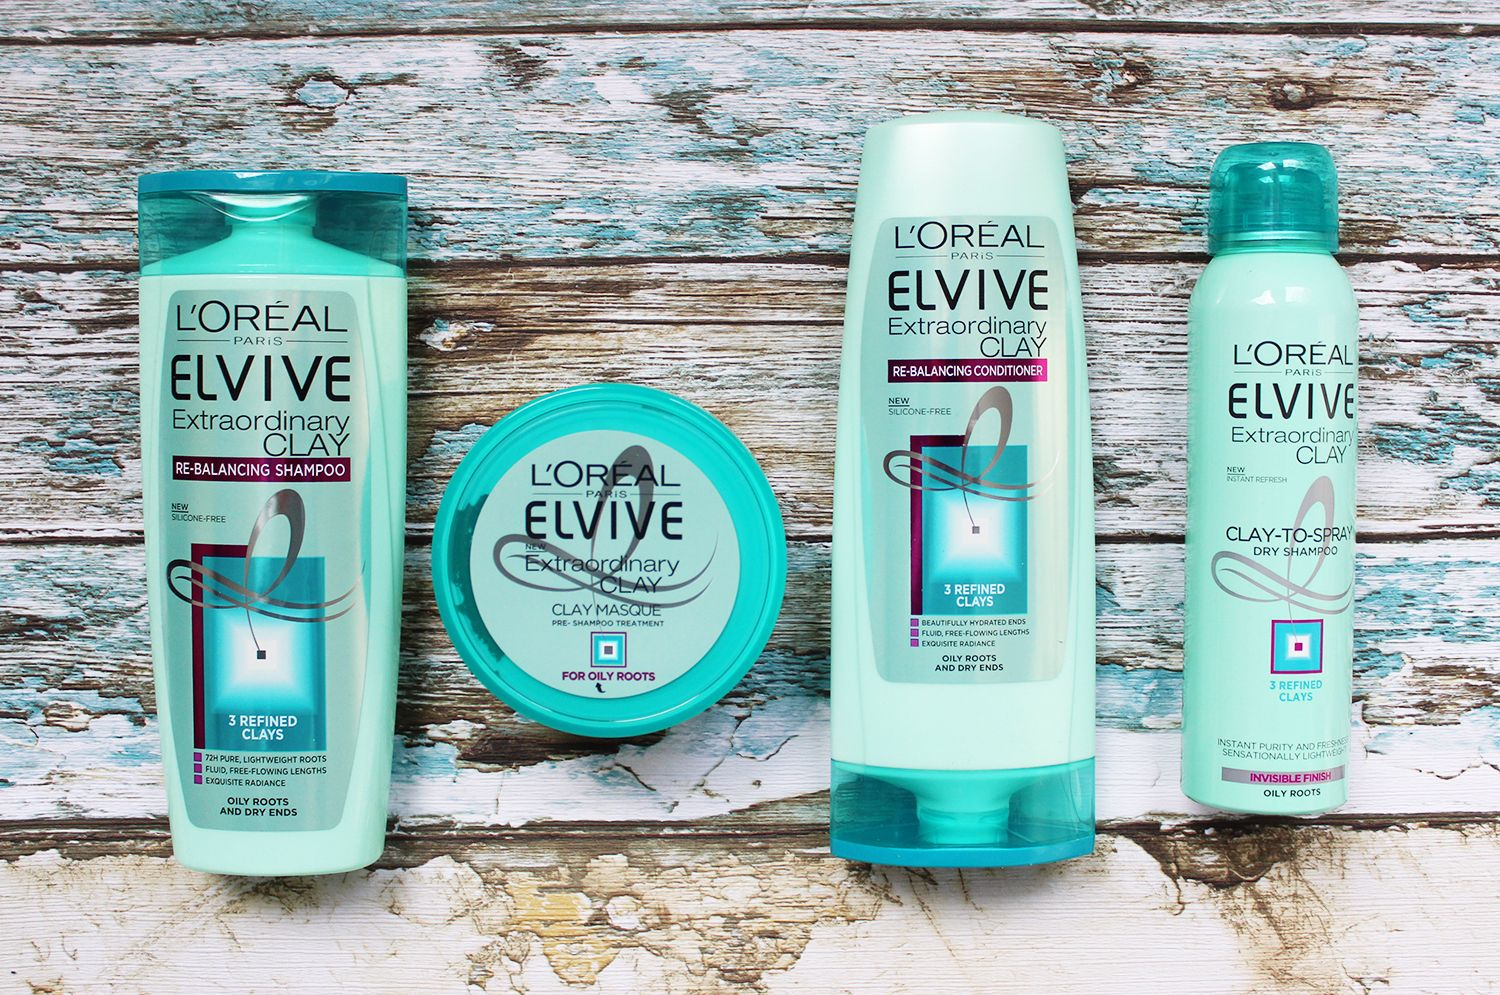 L Oreal Elvive Extraordinary Clay Collection Tales Of A Pale Face Uk Beauty Blog Oily Roots Loreal Hair Care